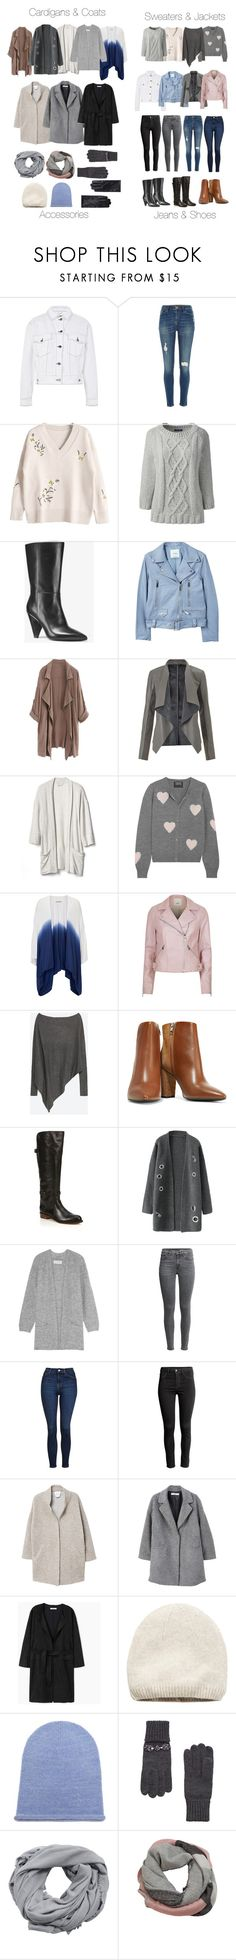 """Cami Inspired (UK) Winter Essentials - The Vampire Diaries / The Originals"" by fangsandfashion ❤ liked on Polyvore featuring Topshop, River Island, Lands' End, MICHAEL Michael Kors, MANGO, WithChic, Miss Selfridge, Gap, Markus Lupfer and Betty Barclay"